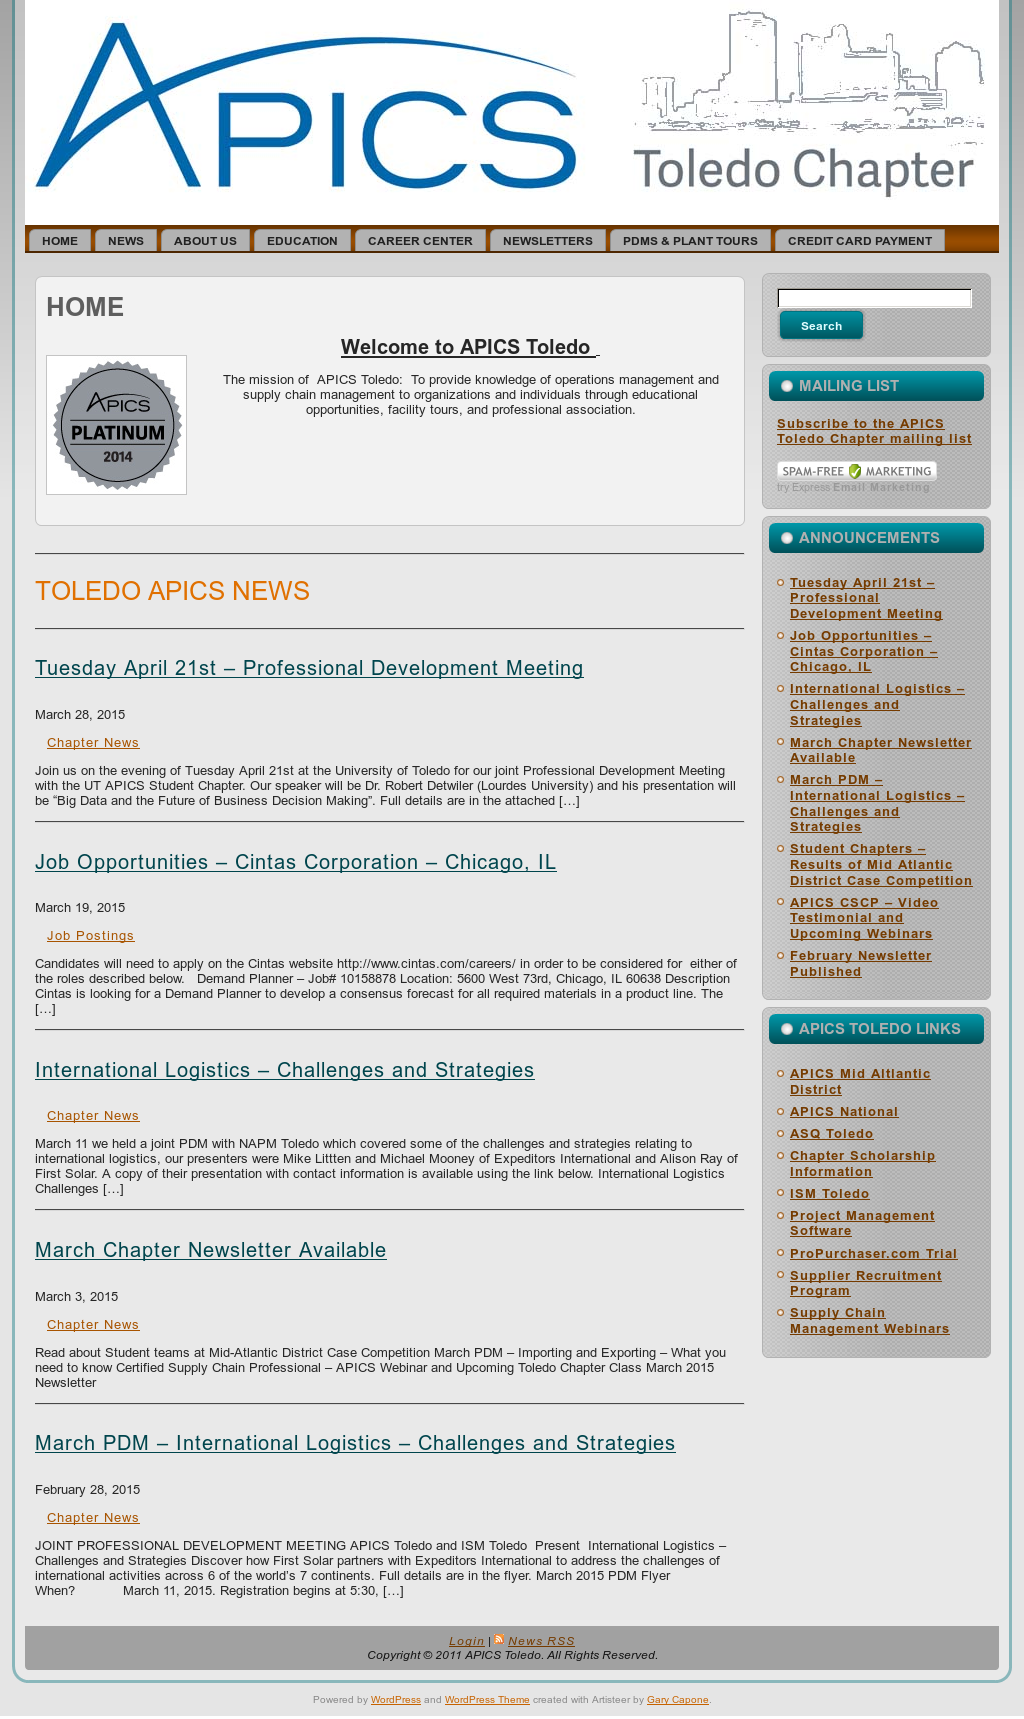 Apics Toledo Competitors, Revenue and Employees - Owler